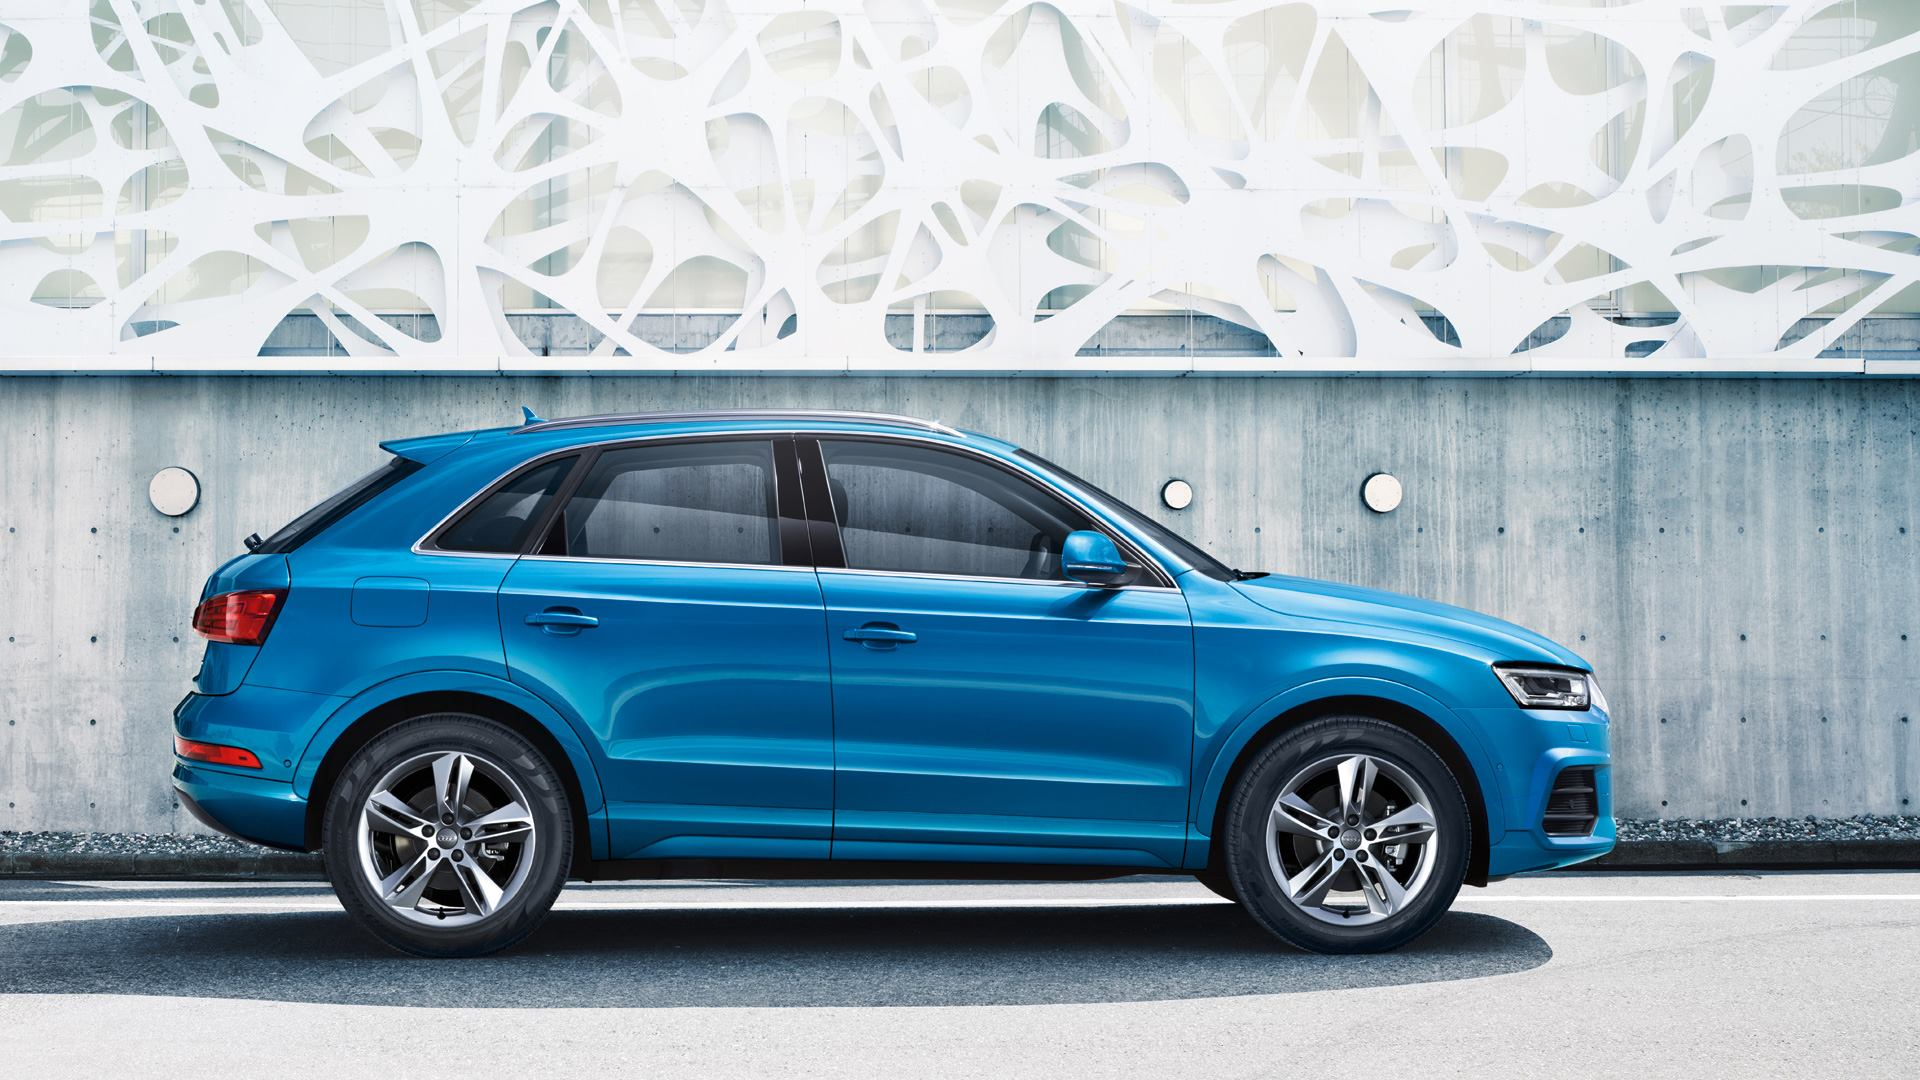 2016 Audi Q3 Price Increases to $33,700 Due to Facelift Updates ...